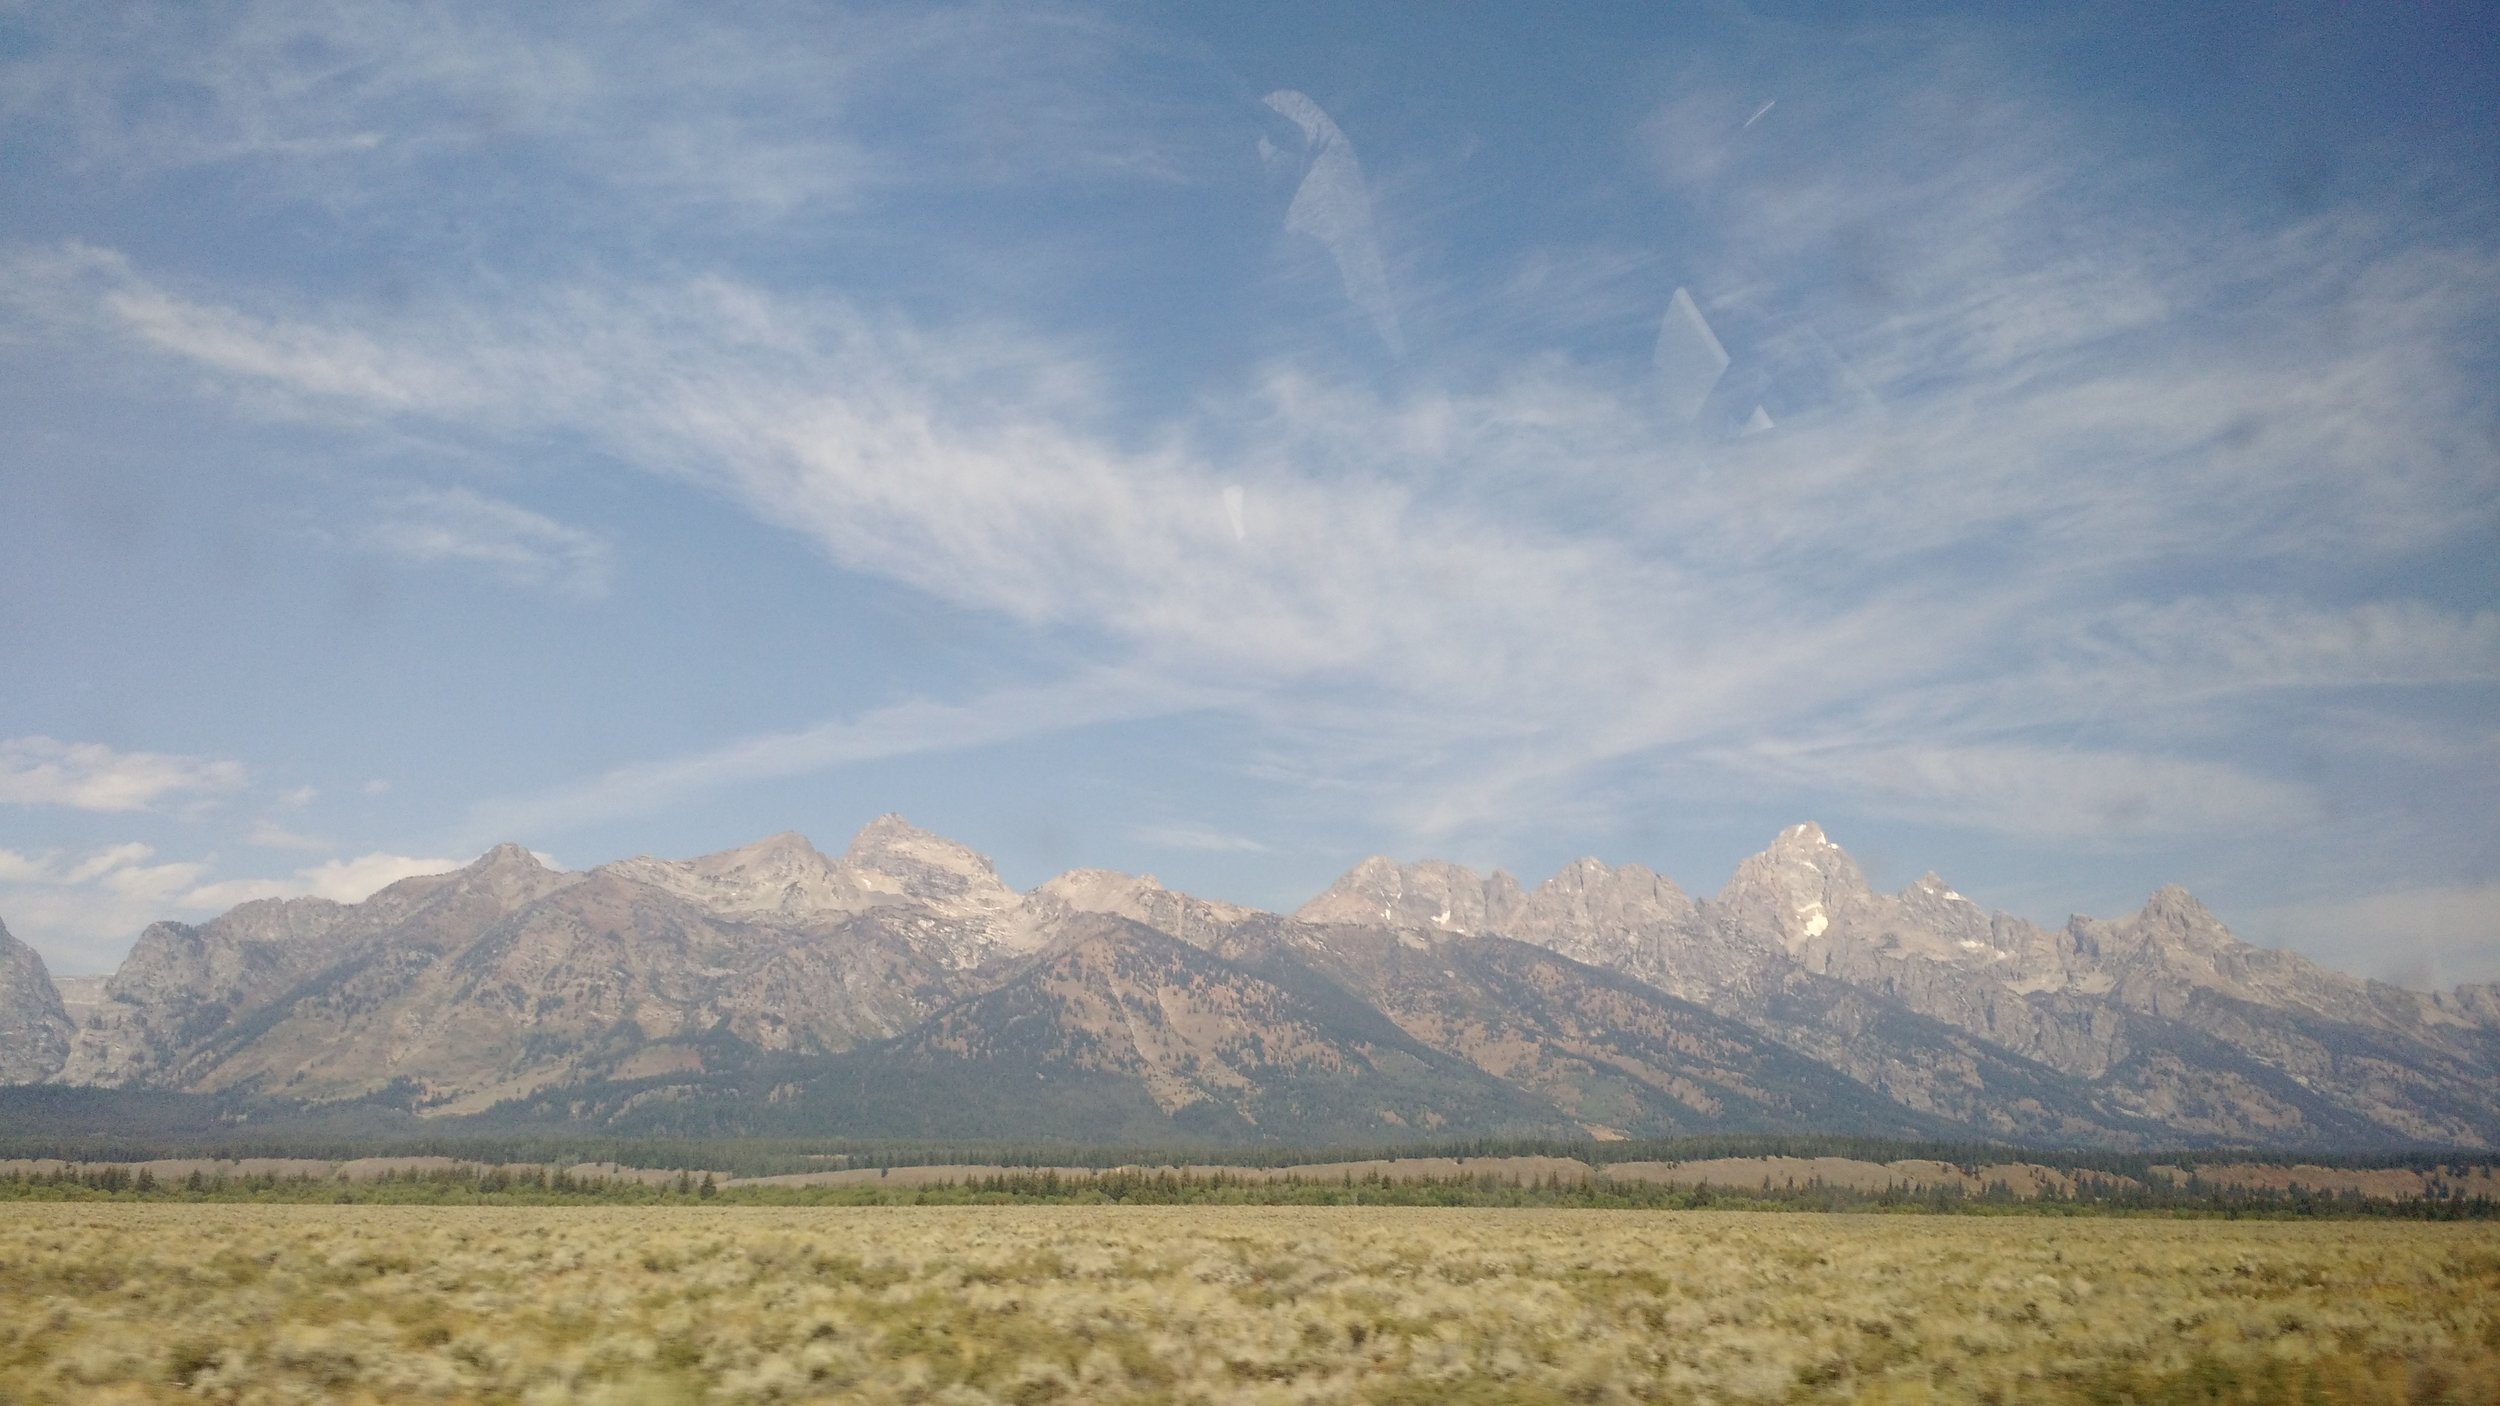 One of the many breathtaking views of Jackson Hole, WY